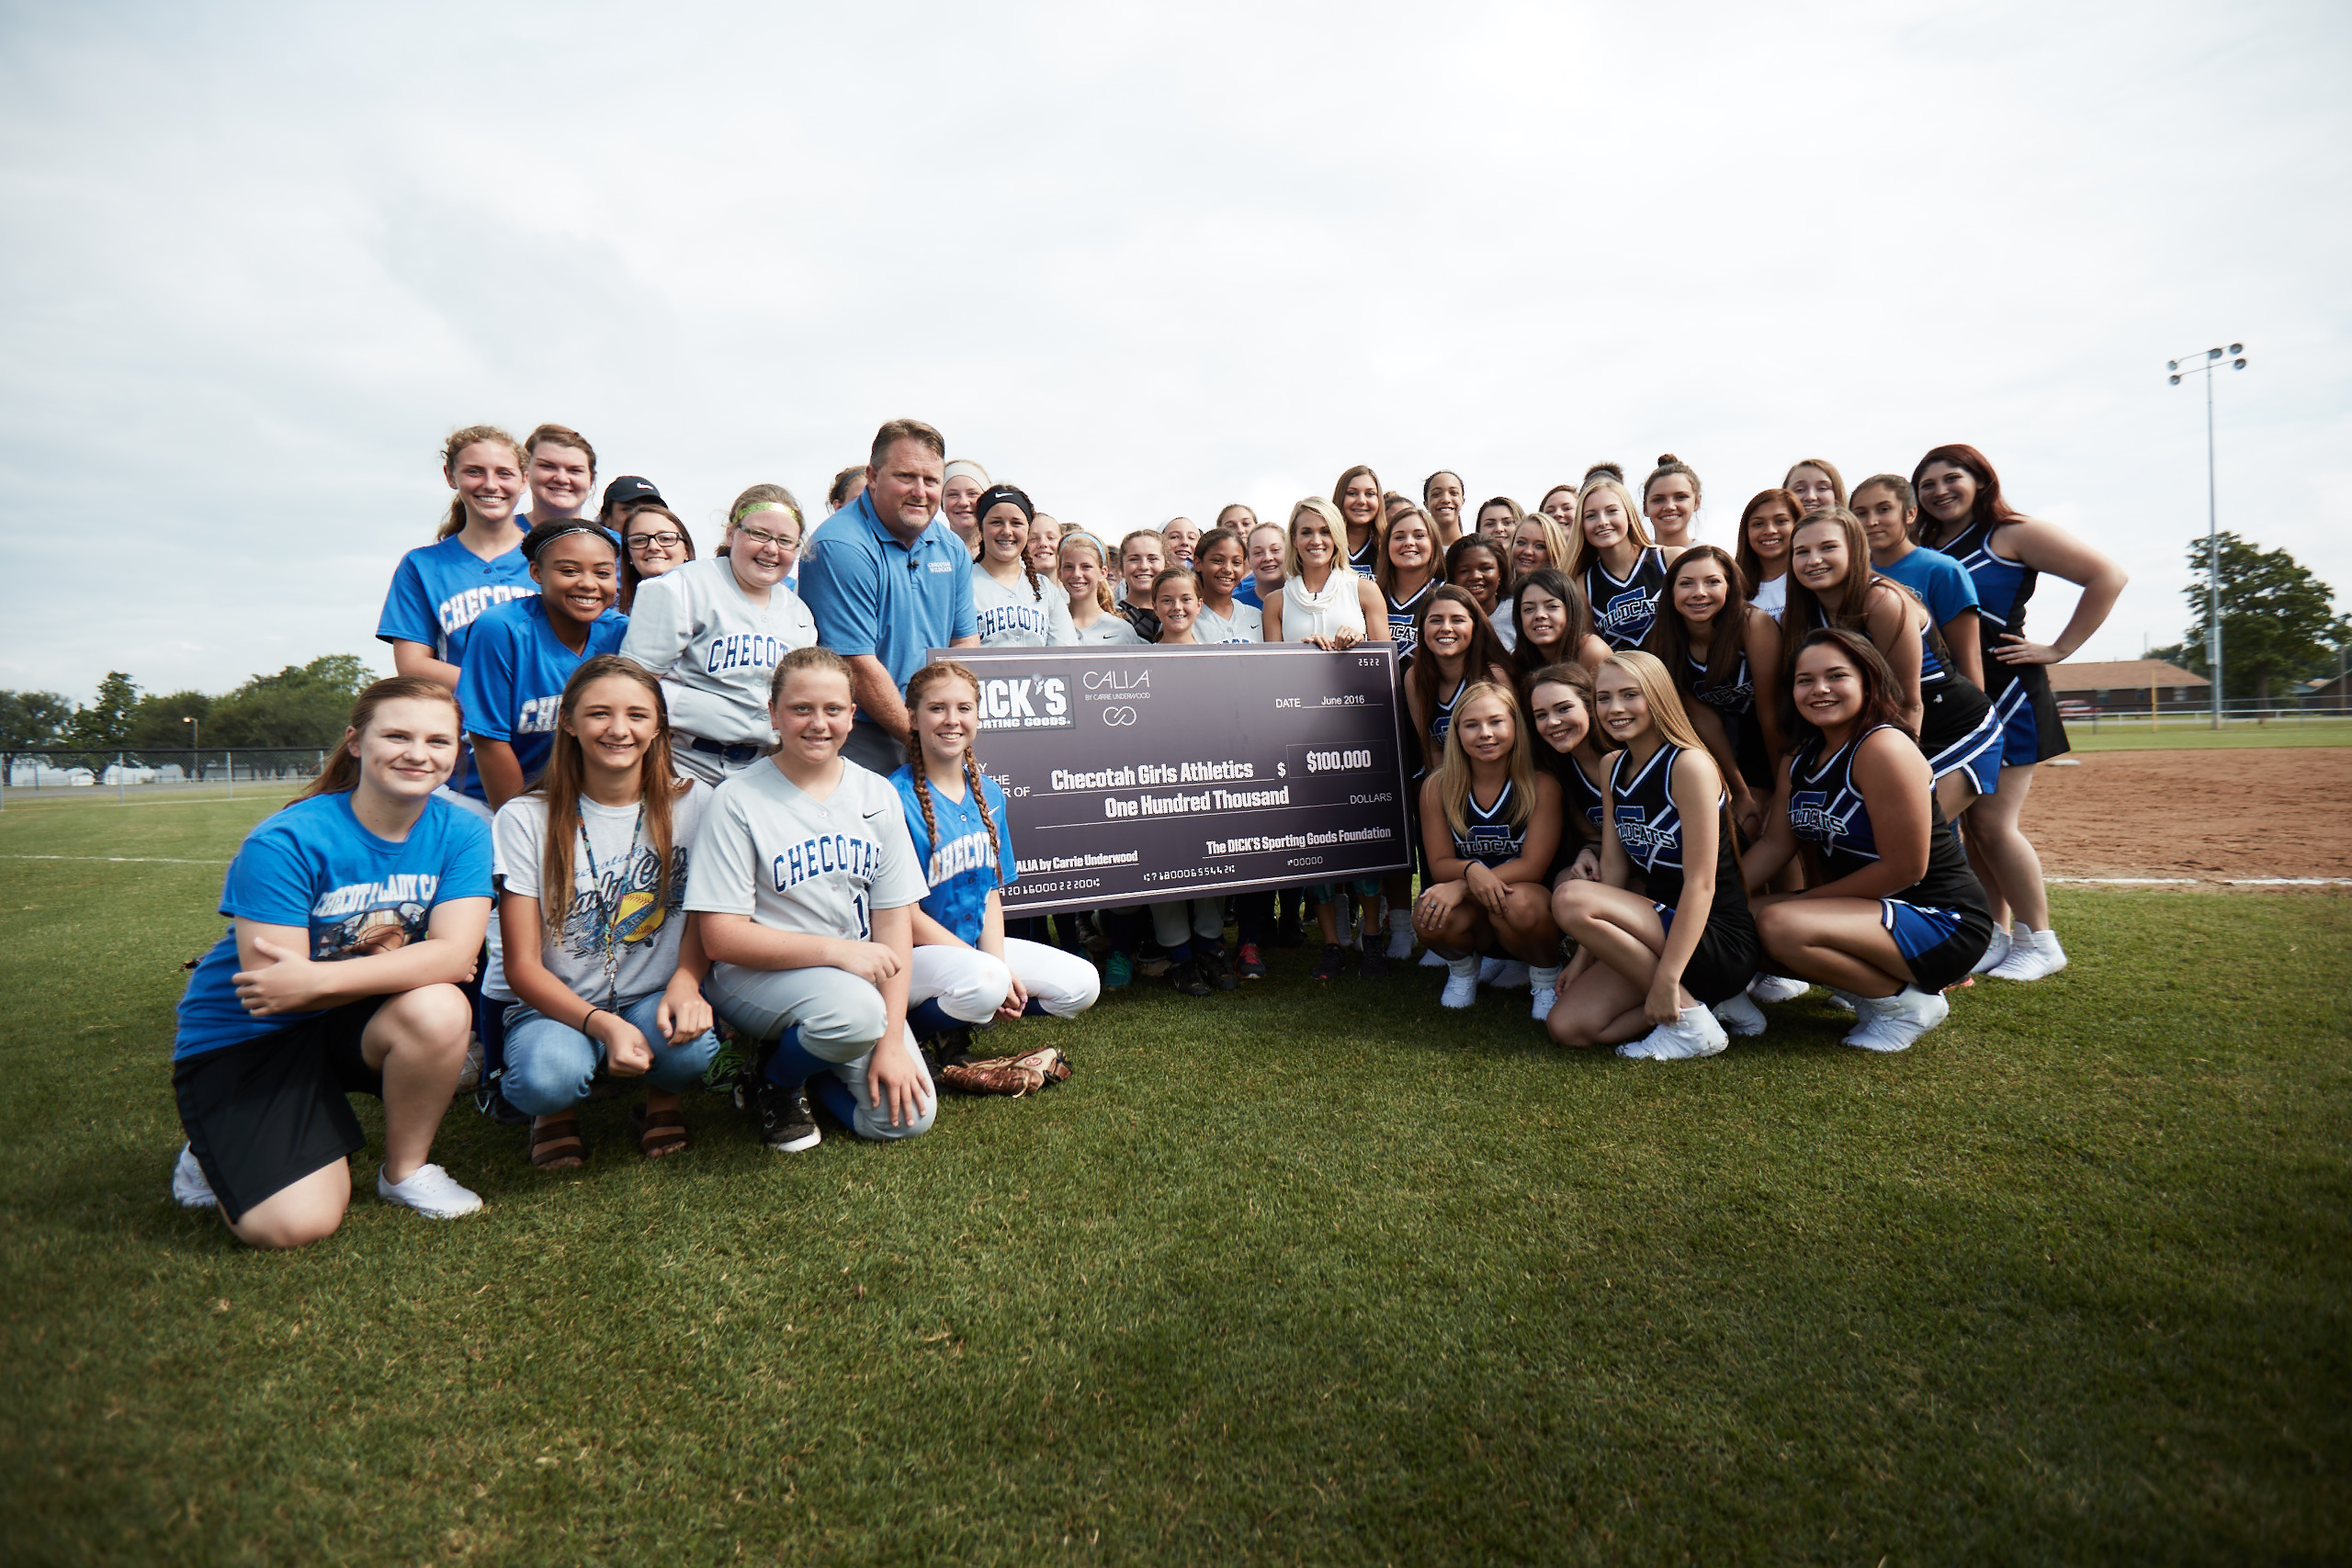 CALIA by Carrie Underwood in Partnership with the Dick's Sporting Goods Foundation to Donate $500,000 in Sports Matter Grants to Girls Youth Sports Teams Across the Country